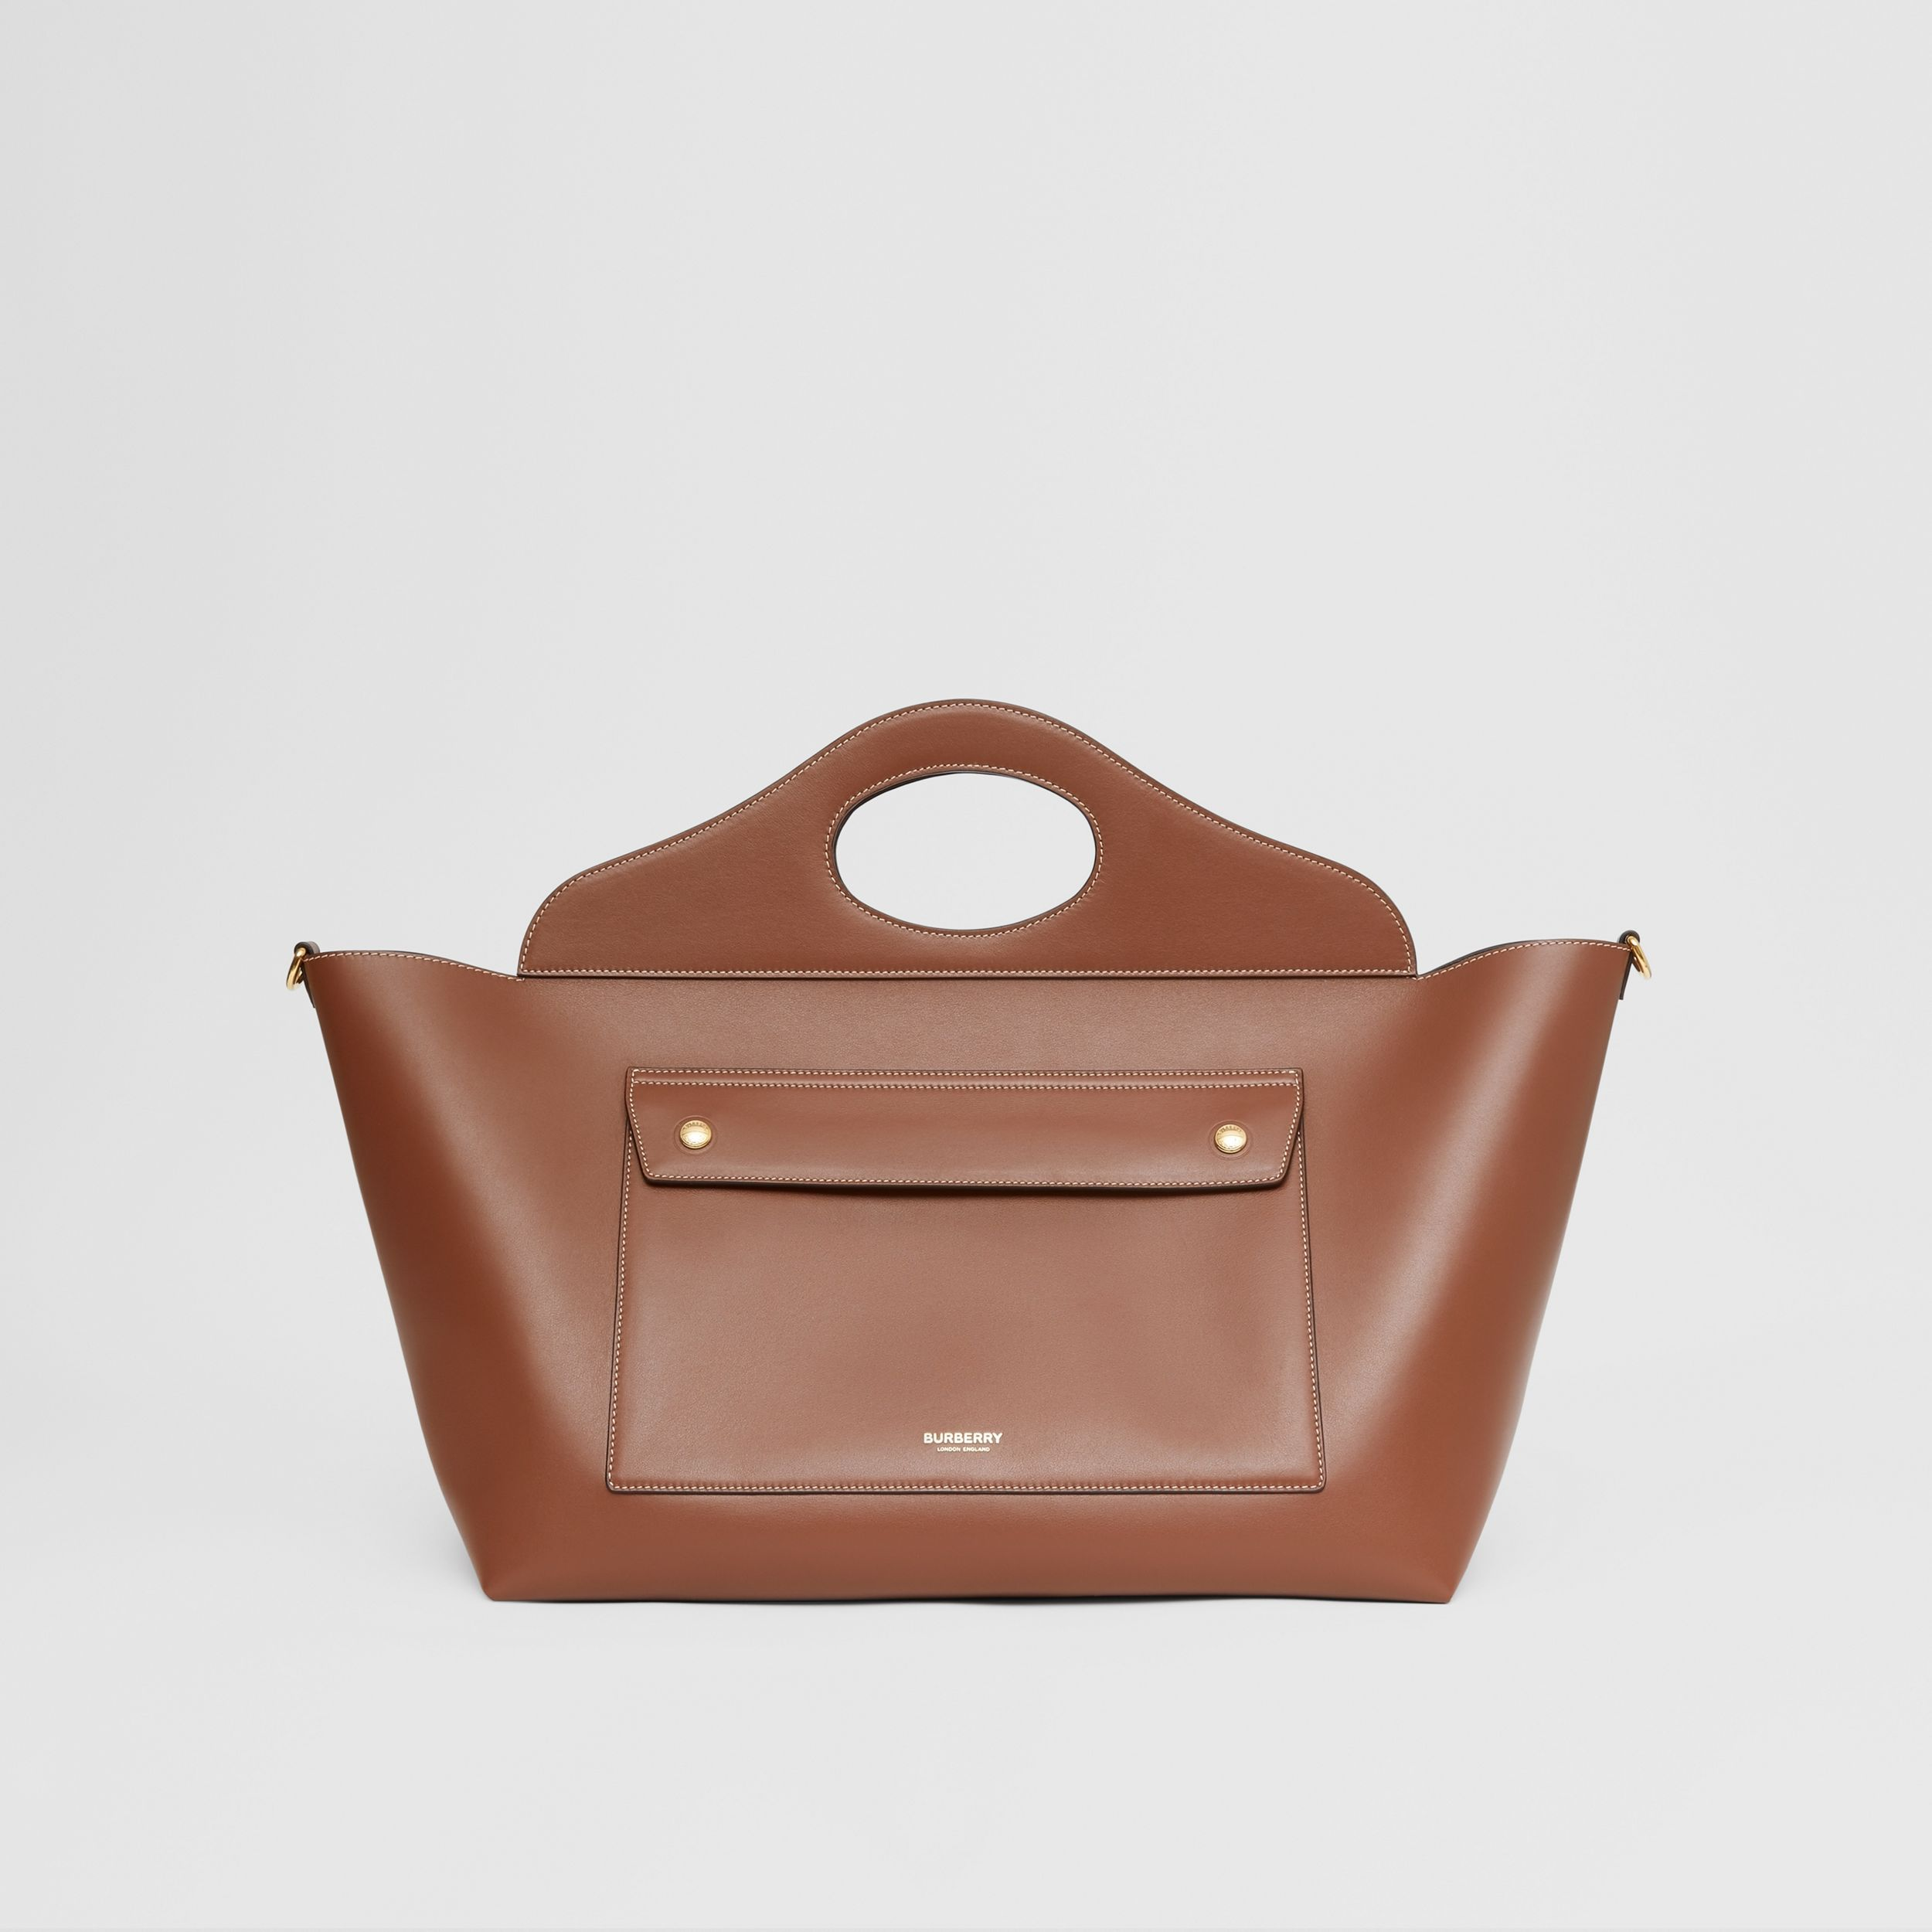 Medium Leather Soft Pocket Tote in Tan - Women | Burberry - 1